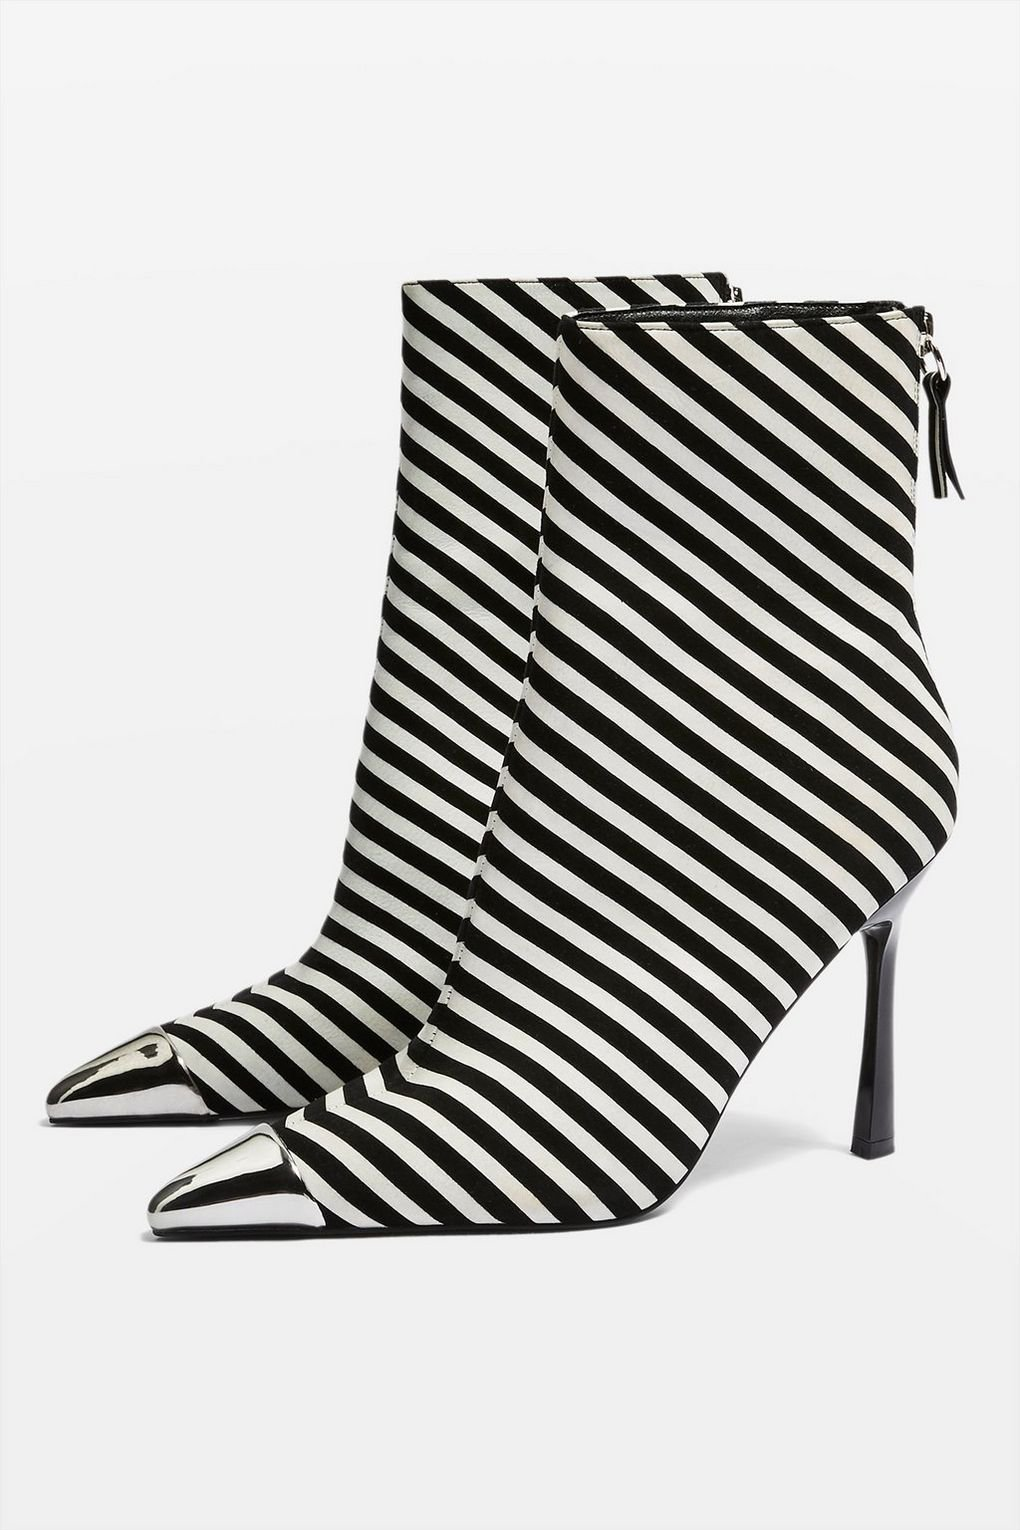 HYPNOTISE Ankle Boots - Boots - Shoes - Topshop